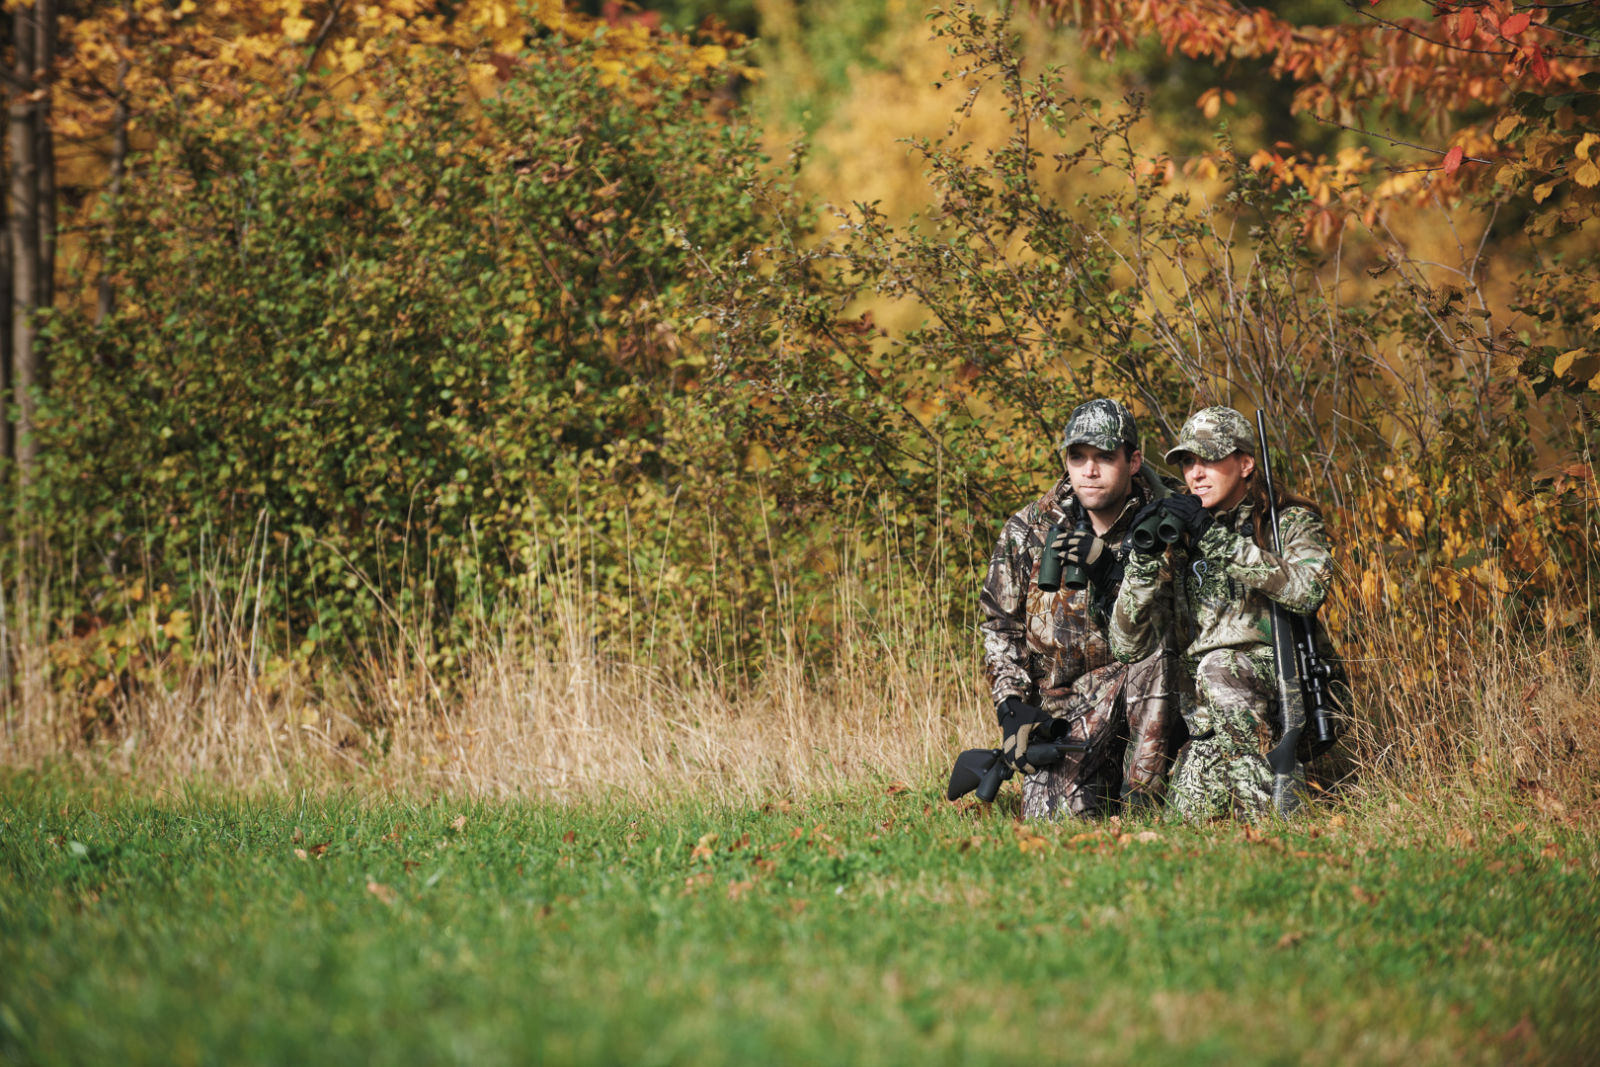 SLC, two hunters sitting on the ground in camo outfit